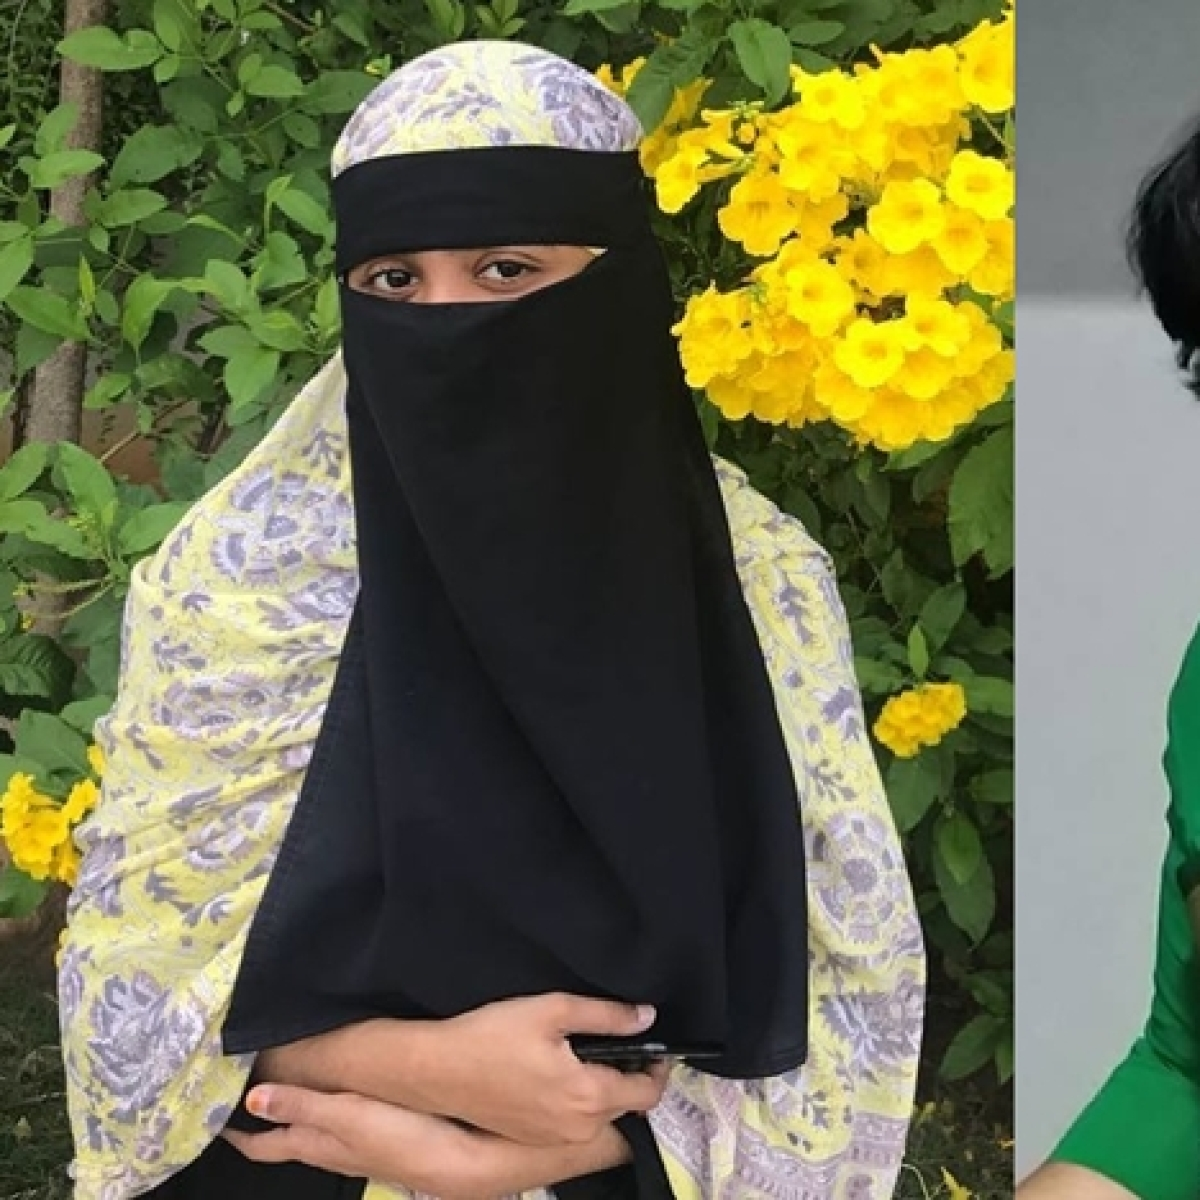 'Please get some fresh air': AR Rahman's daughter hits back at Taslima Nasreen for trolling her over burqa